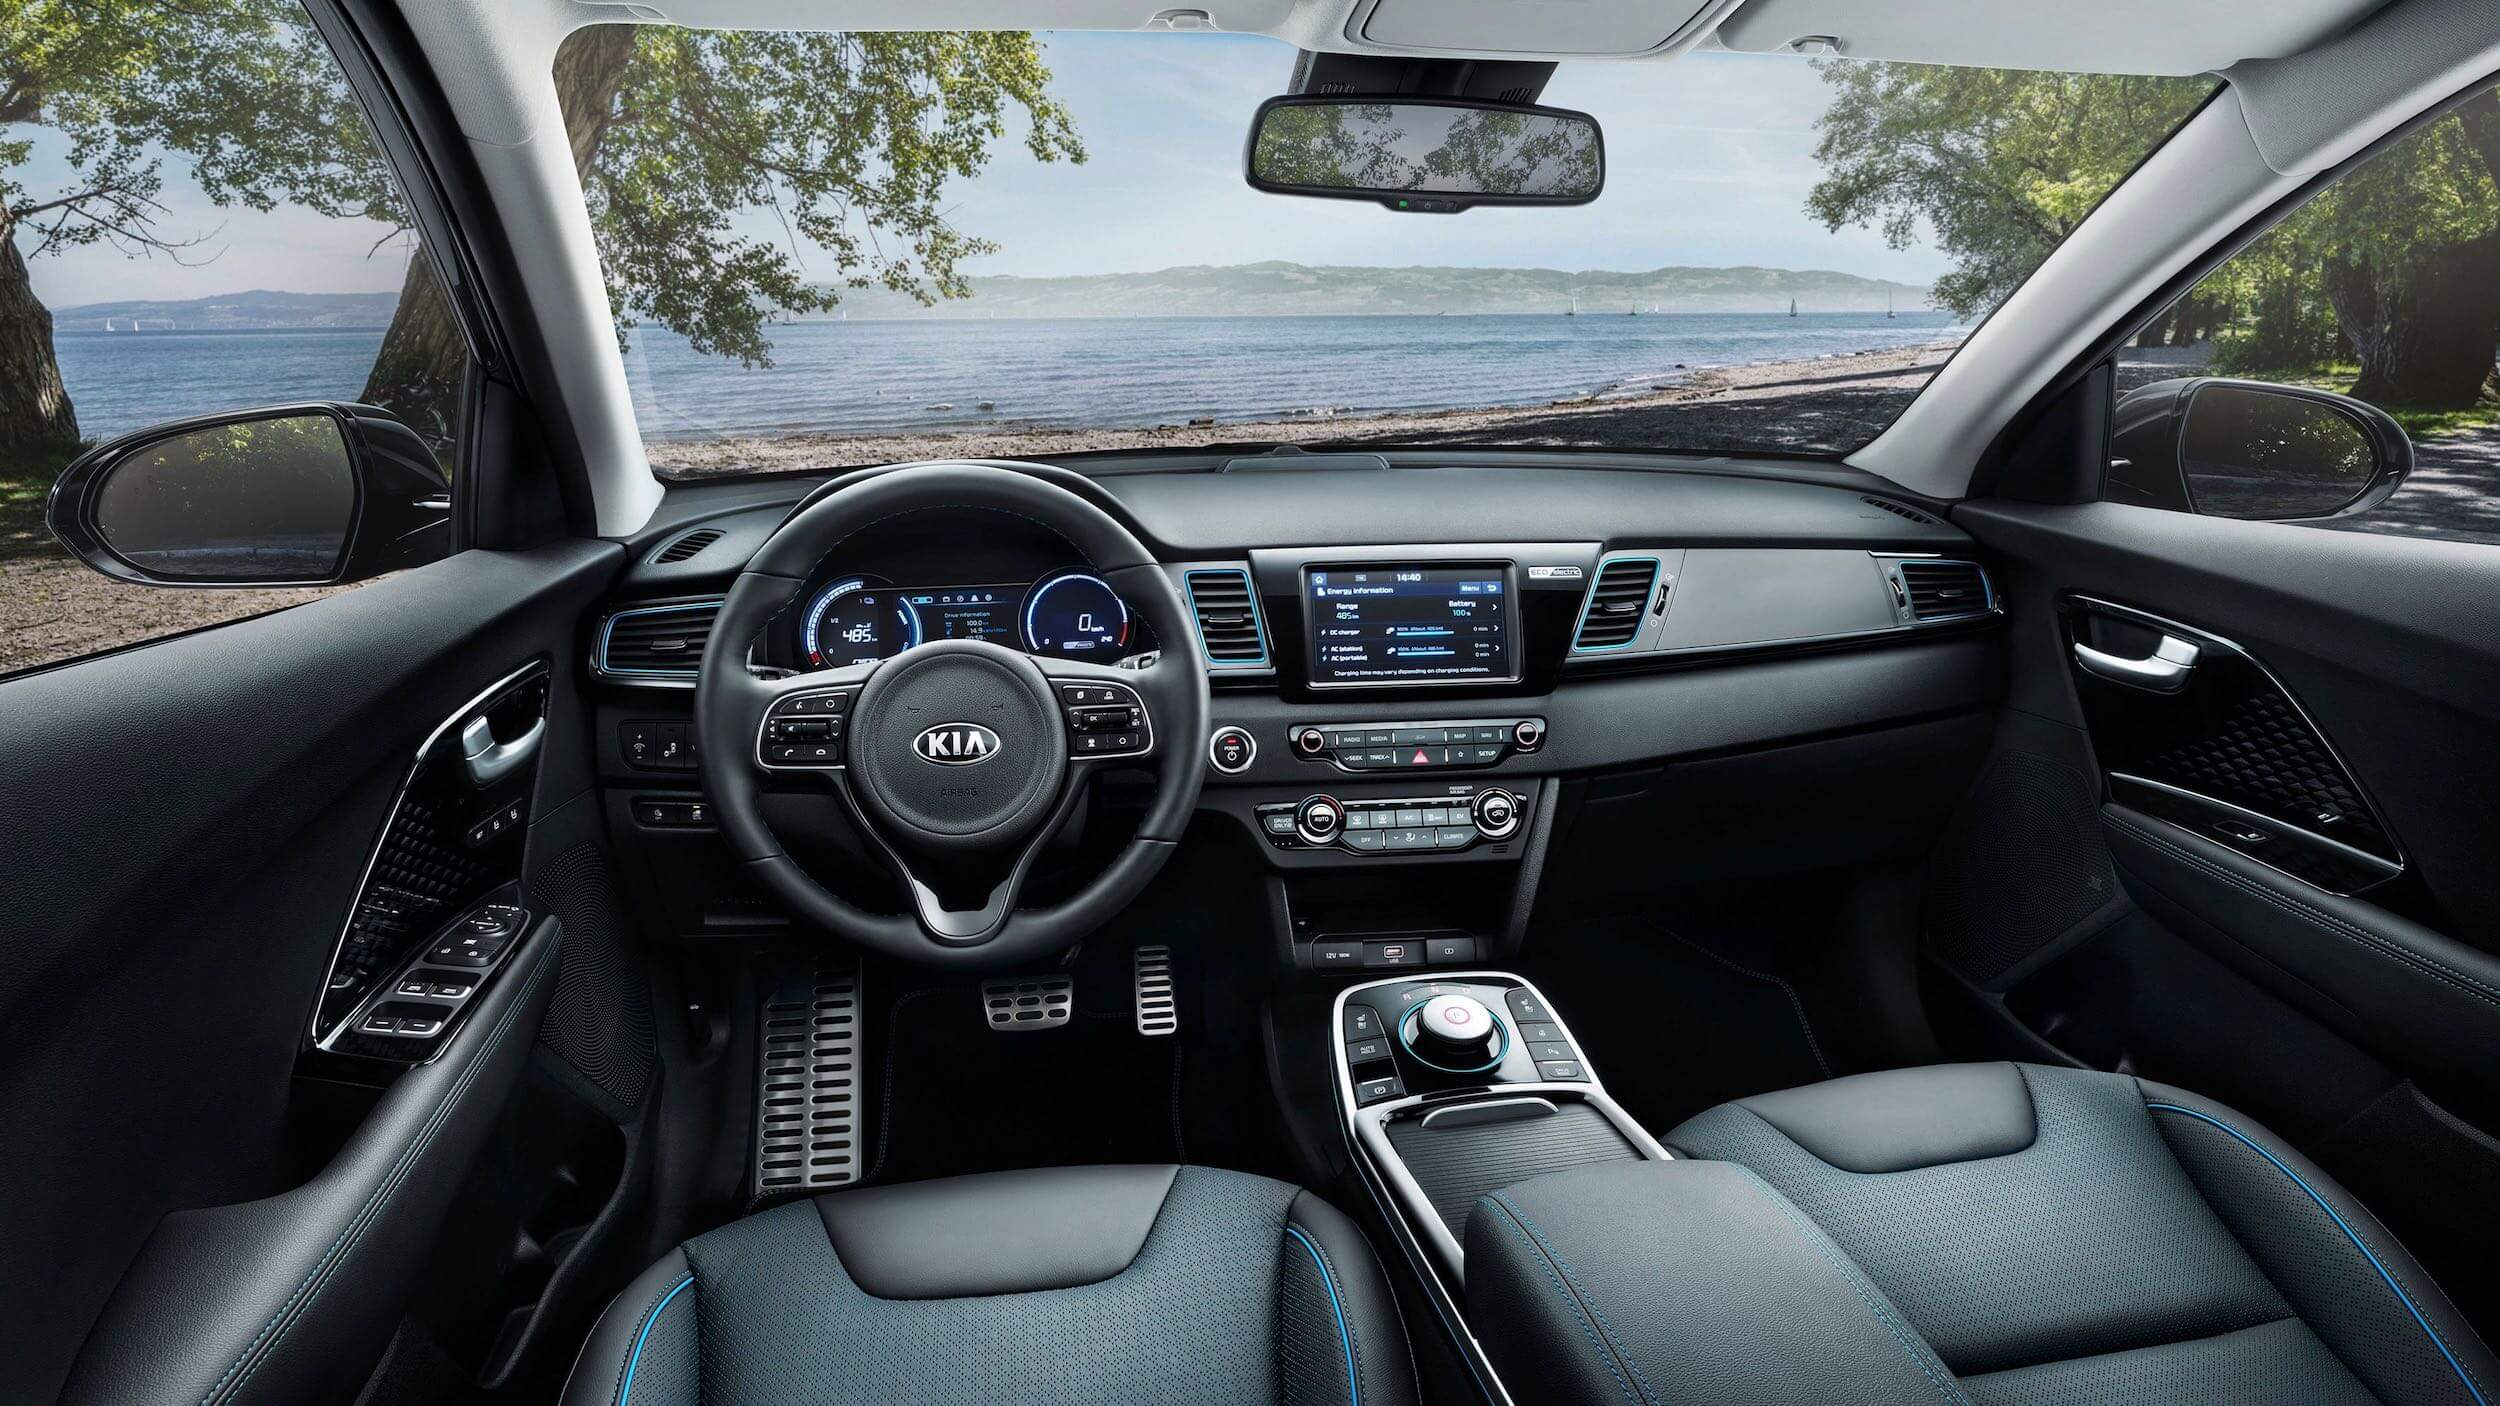 Kia e-Niro Electric interior dashboard cadeiras